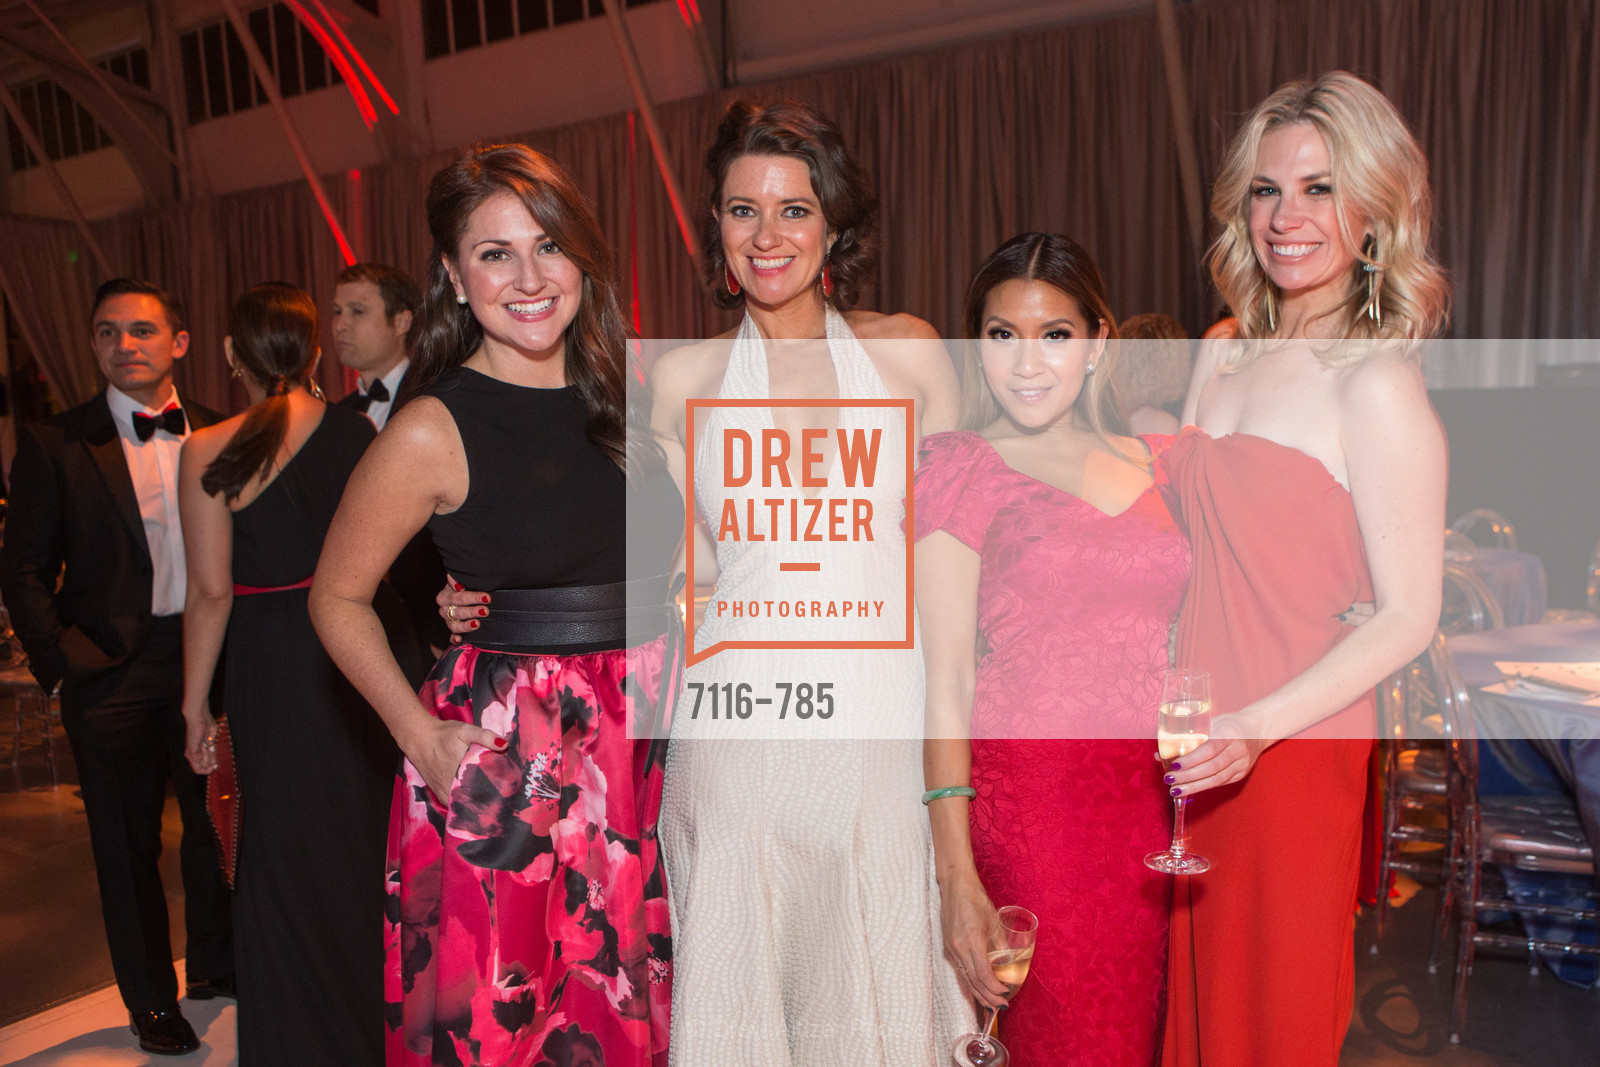 Kirsten Strobel, Lillian Phan, Colby Hallen, 2015 RED CROSS Gala, US, April 12th, 2015,Drew Altizer, Drew Altizer Photography, full-service agency, private events, San Francisco photographer, photographer california